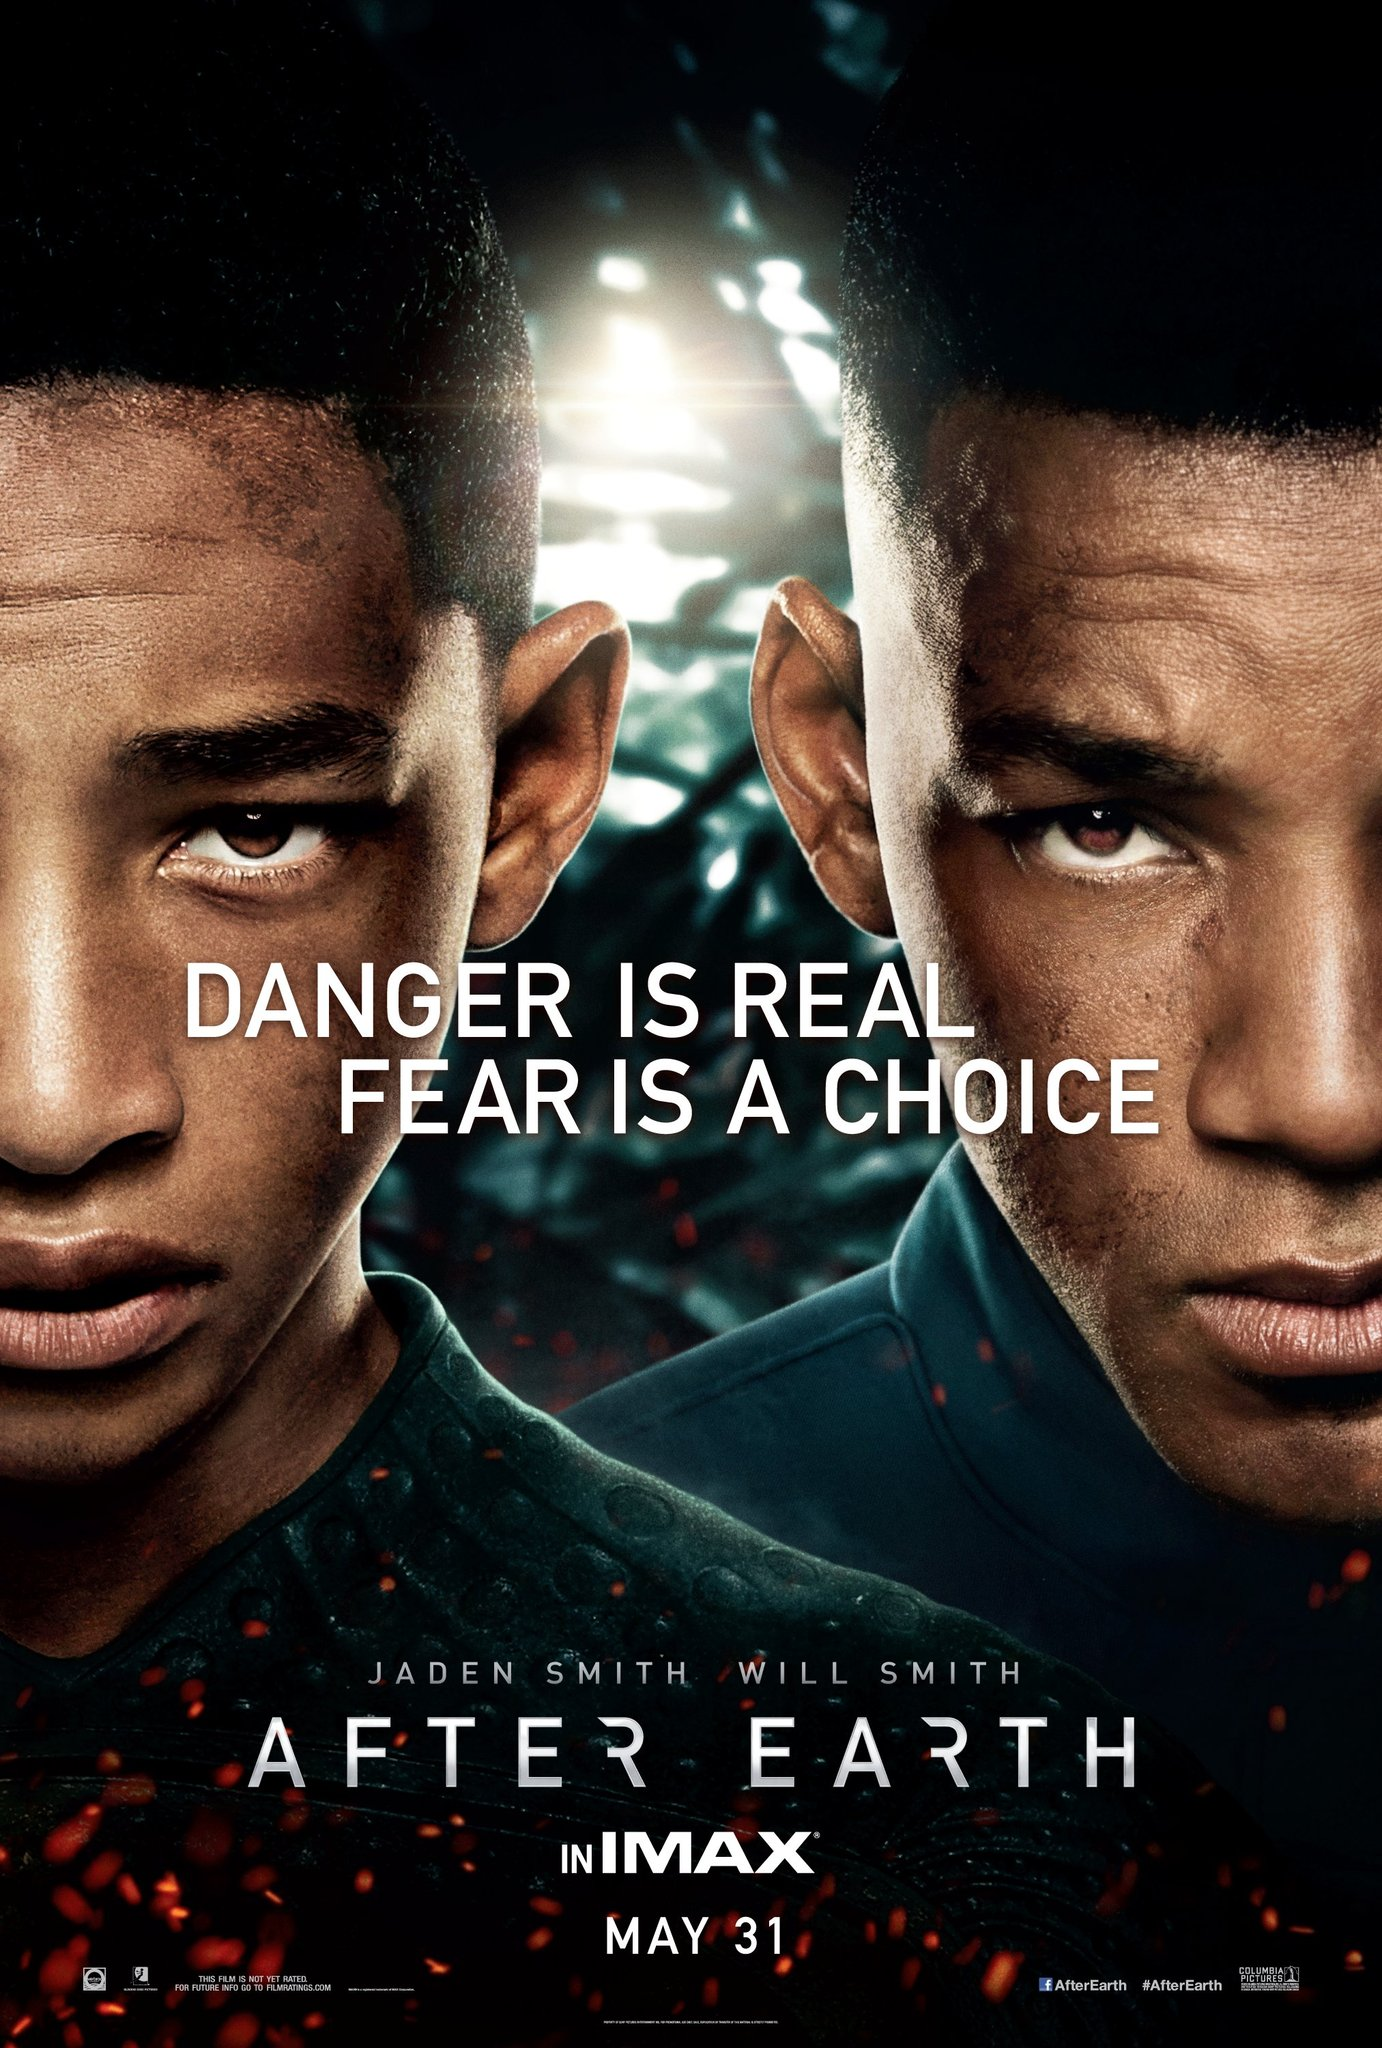 after earth full movie in hindi free download mp4 hd